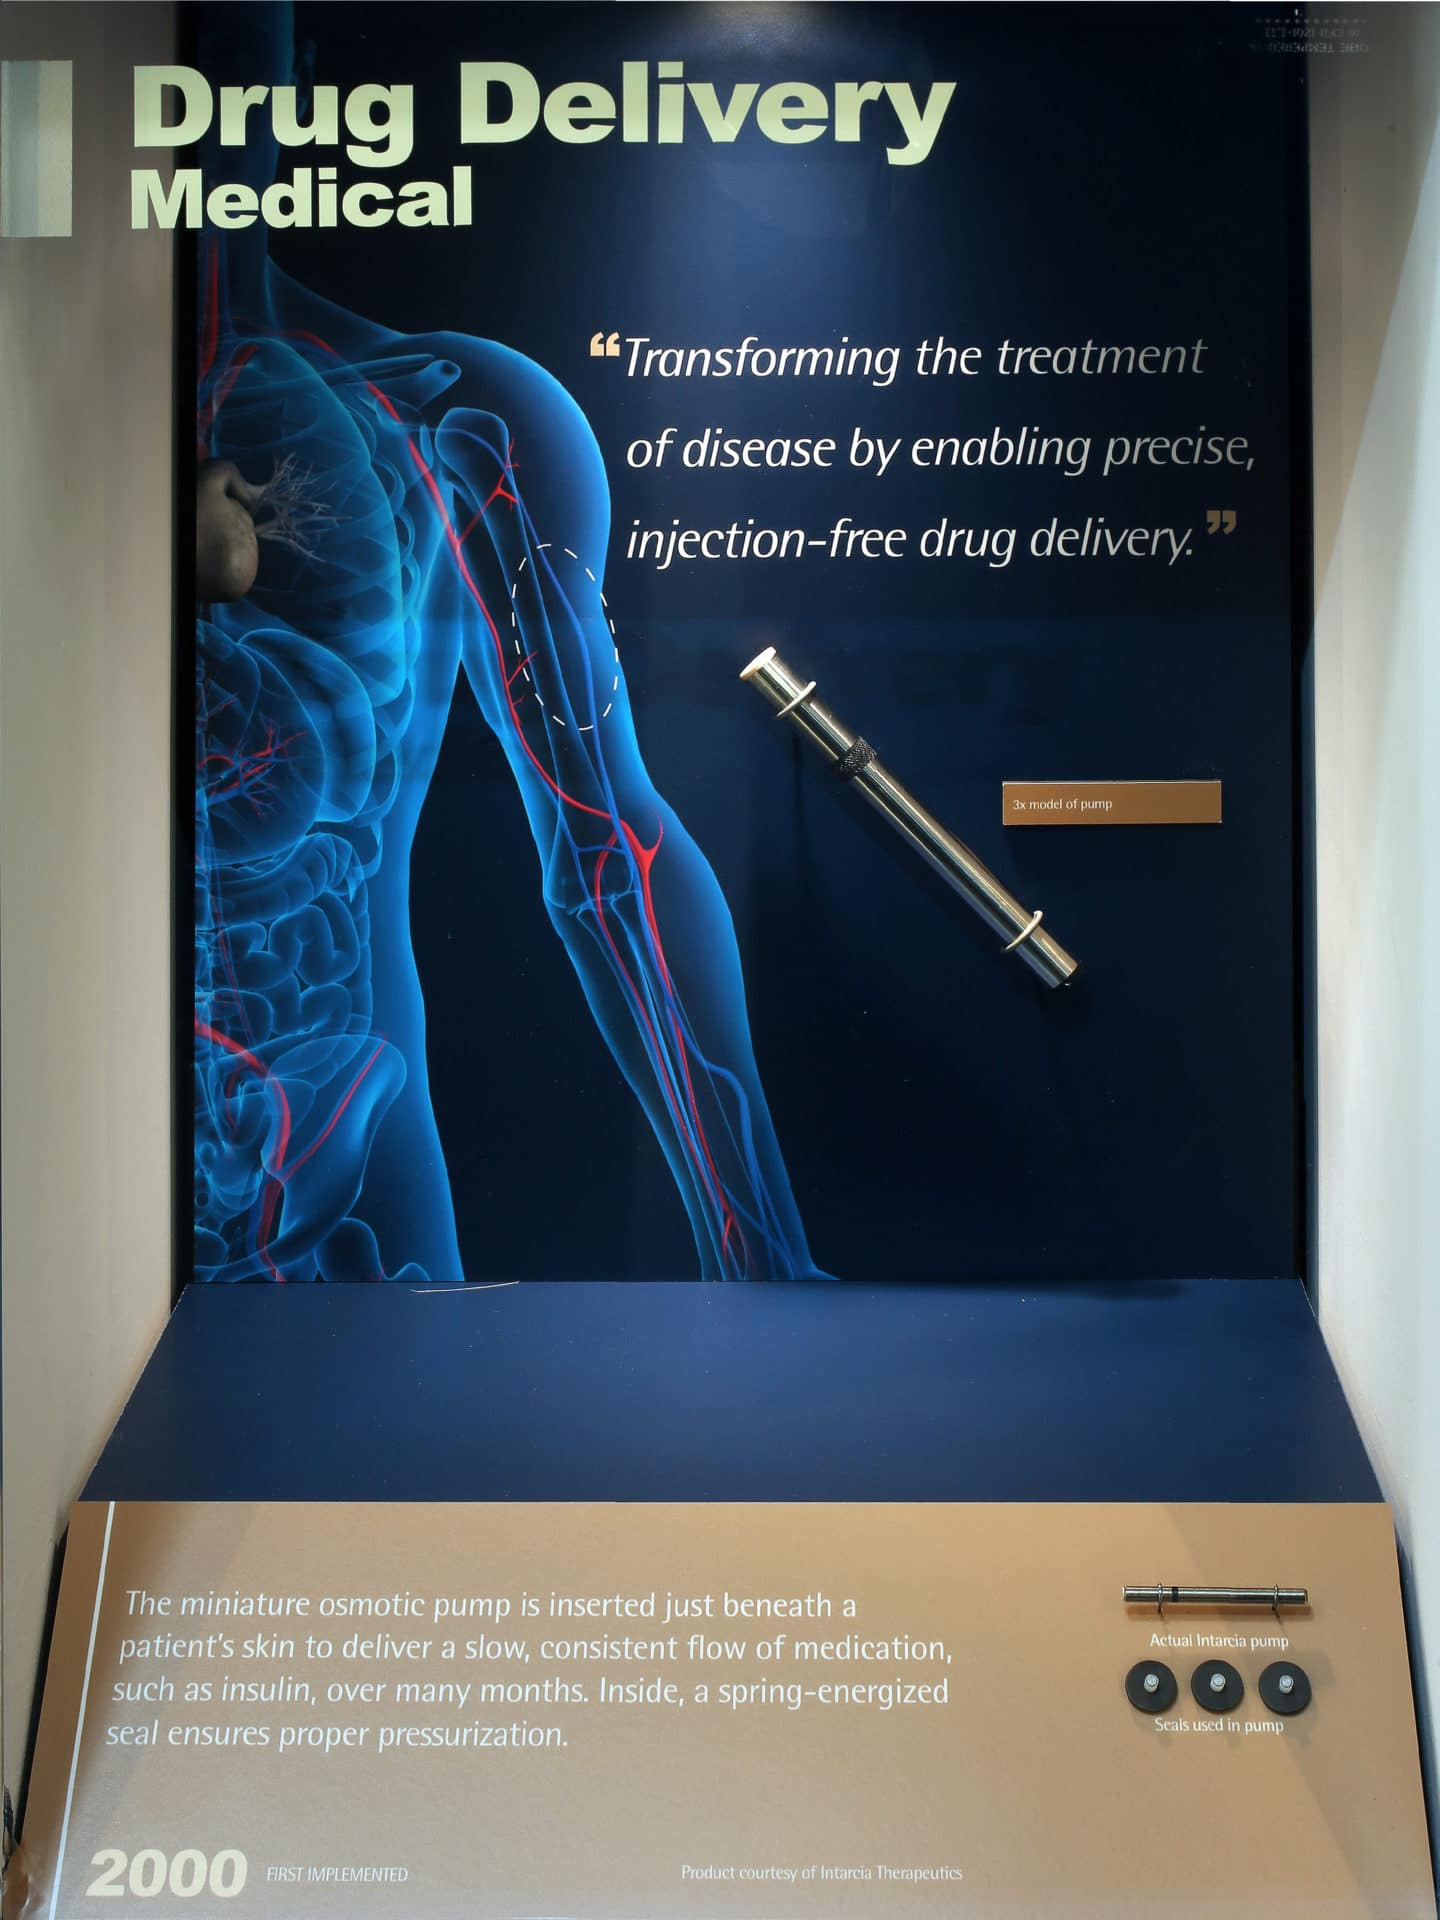 Medical Drug Delivery in Exhibit by Studio Tectonic